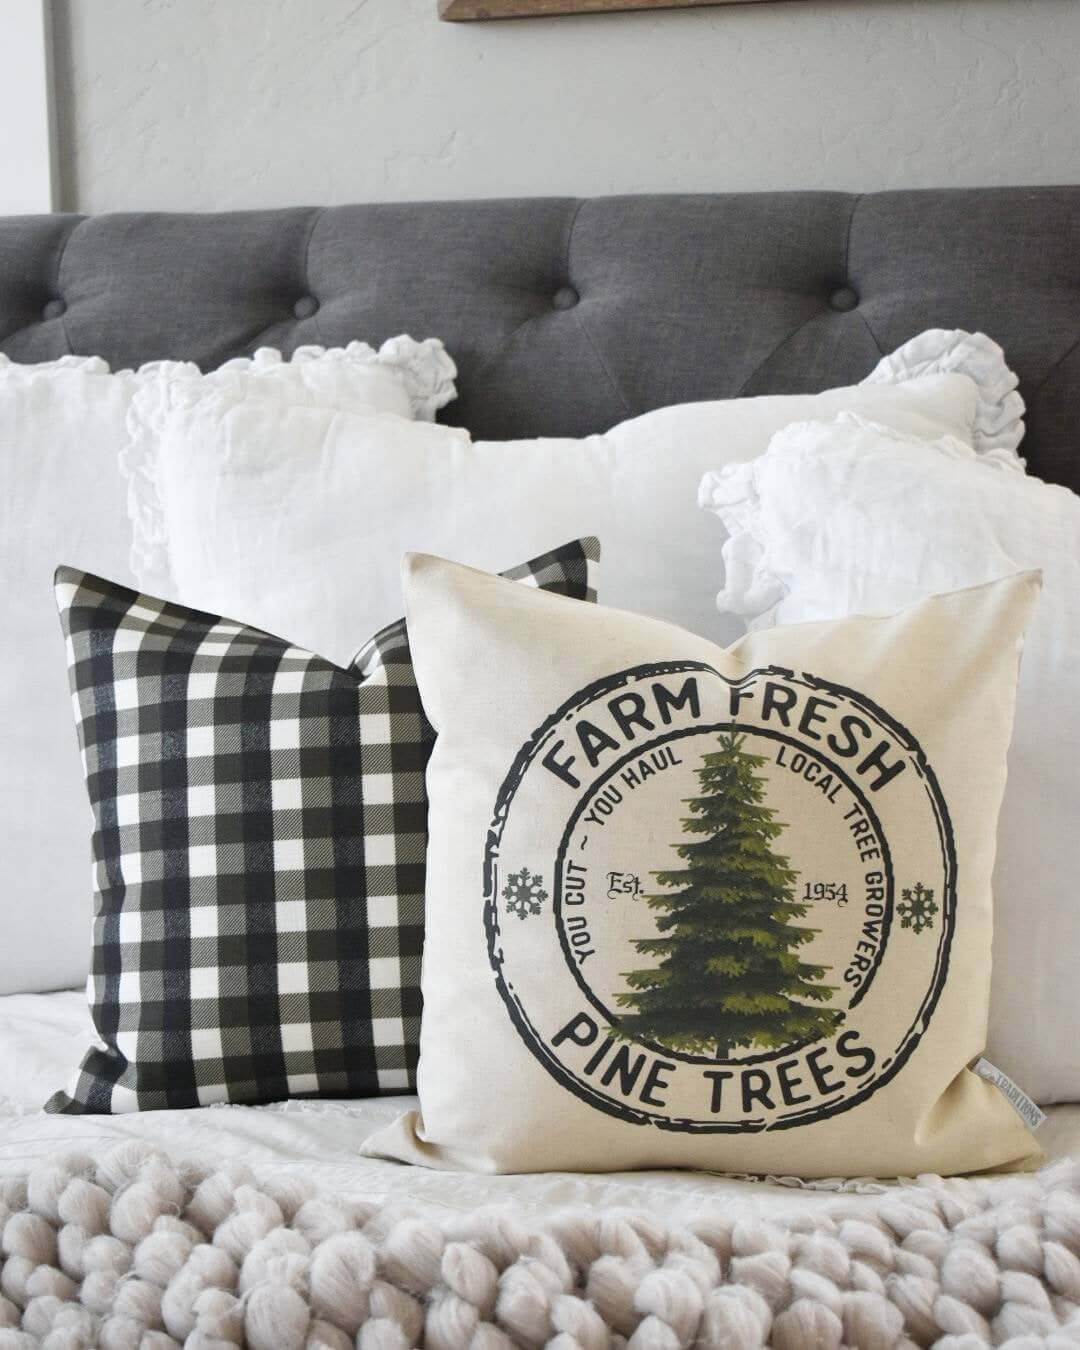 Swell 29 Best Christmas Pillows To Find The Perfect Couch Inzonedesignstudio Interior Chair Design Inzonedesignstudiocom